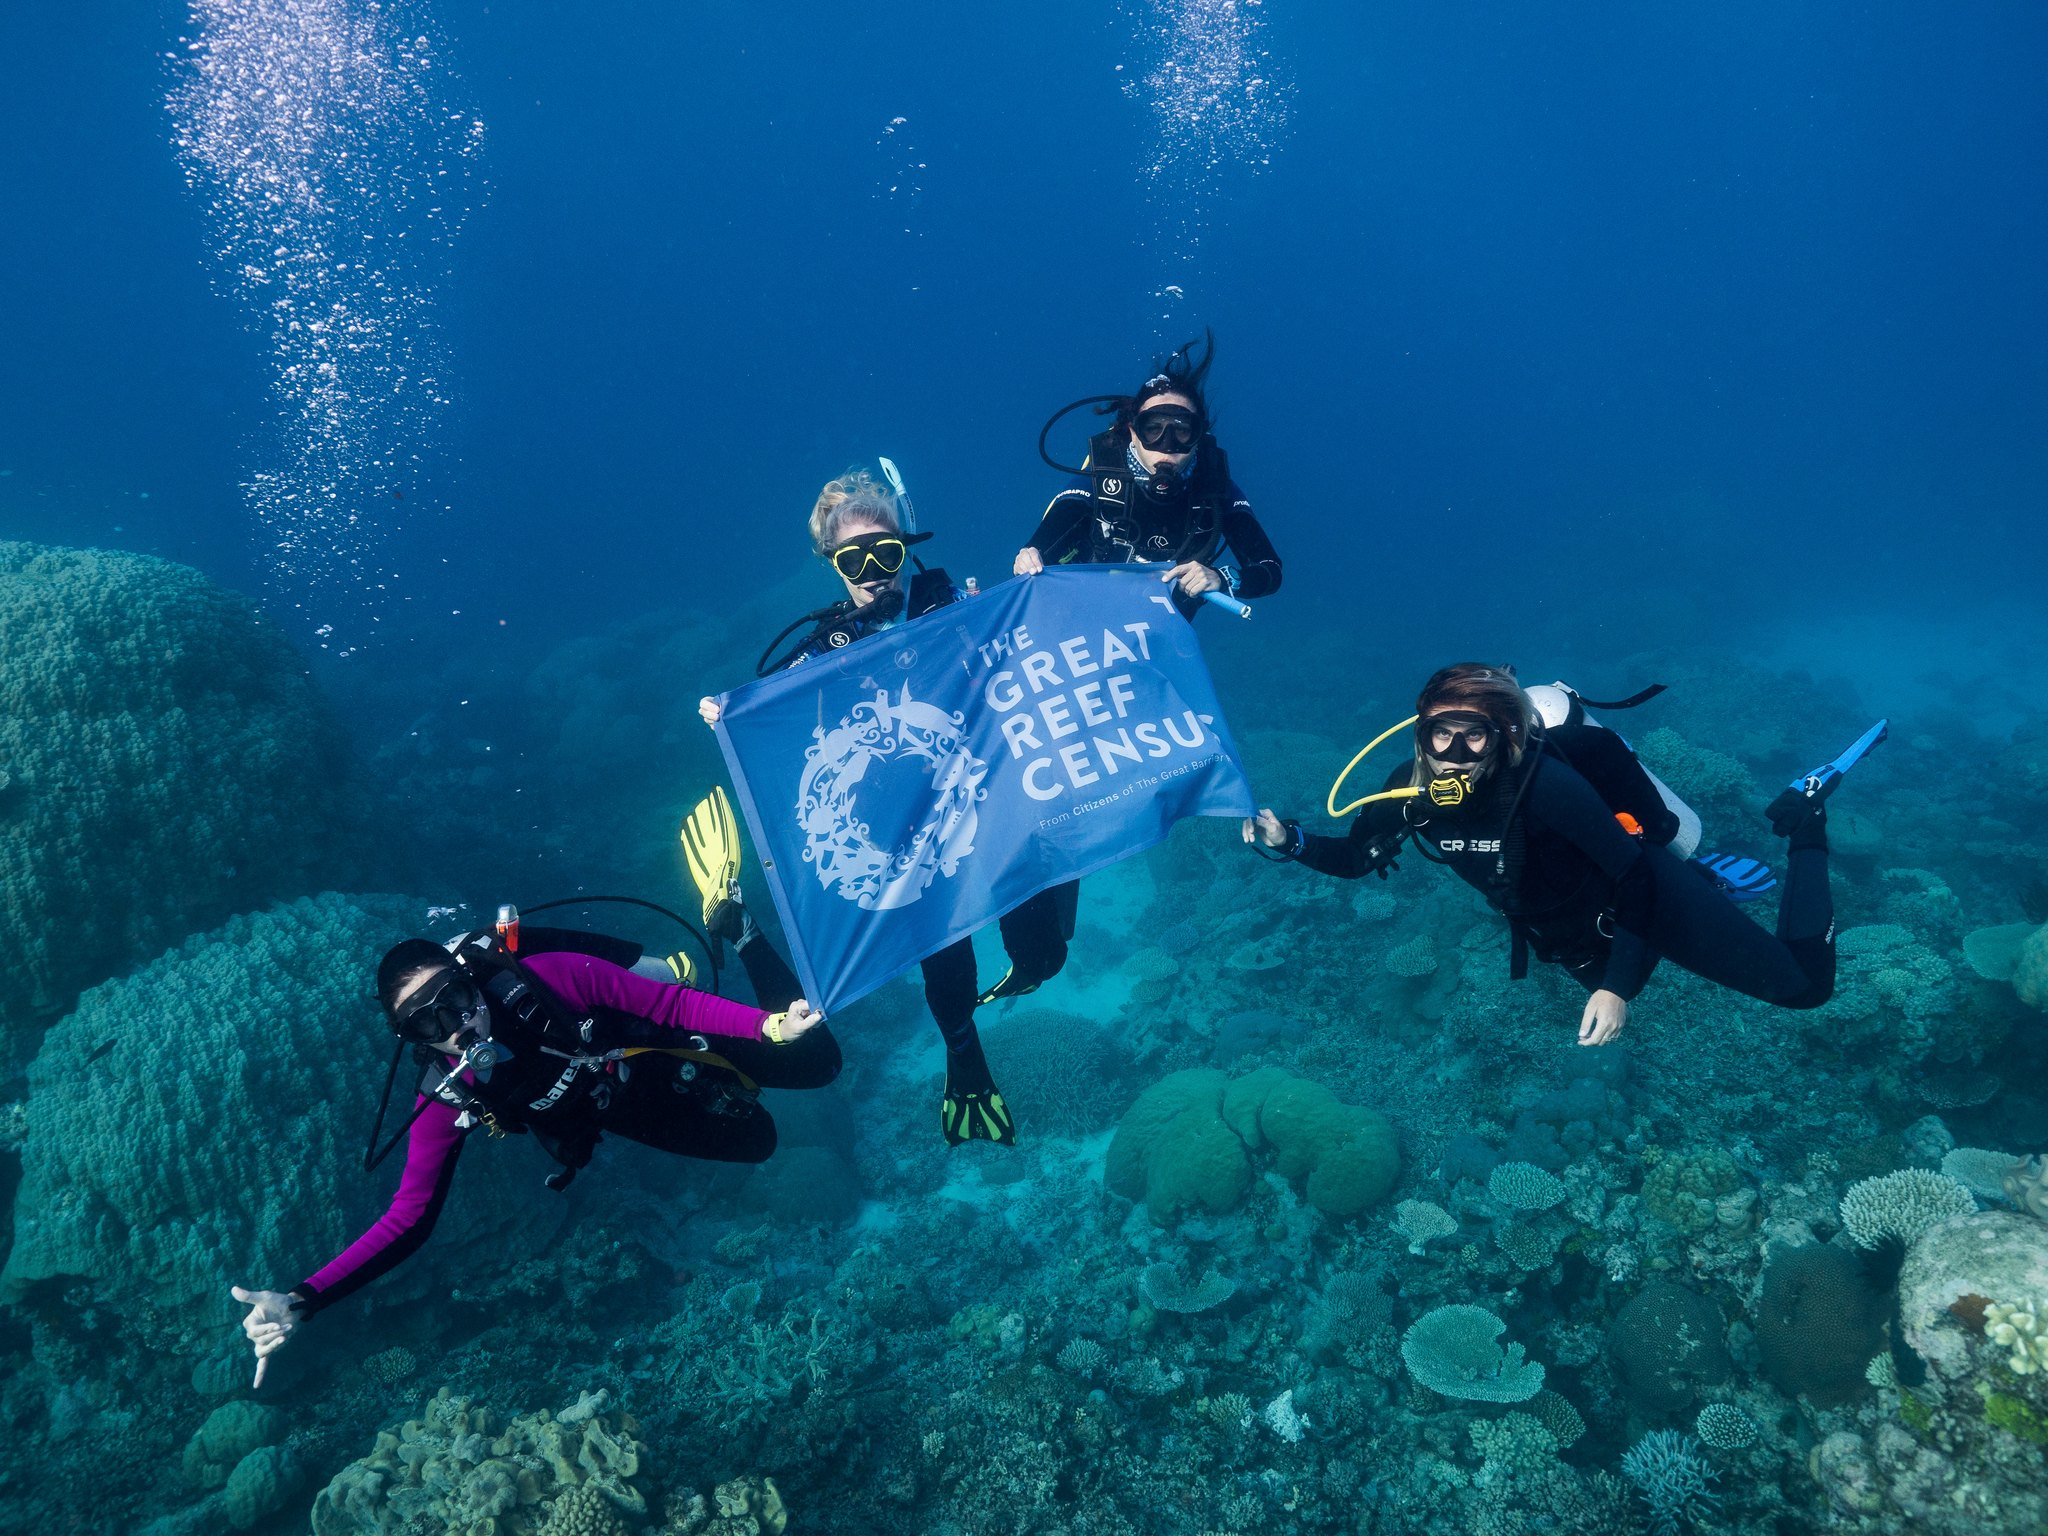 Divers hold Great Reef Census banner during survey expedition on Spirit of Freedom. Credit: Grumpy Turtle Creative